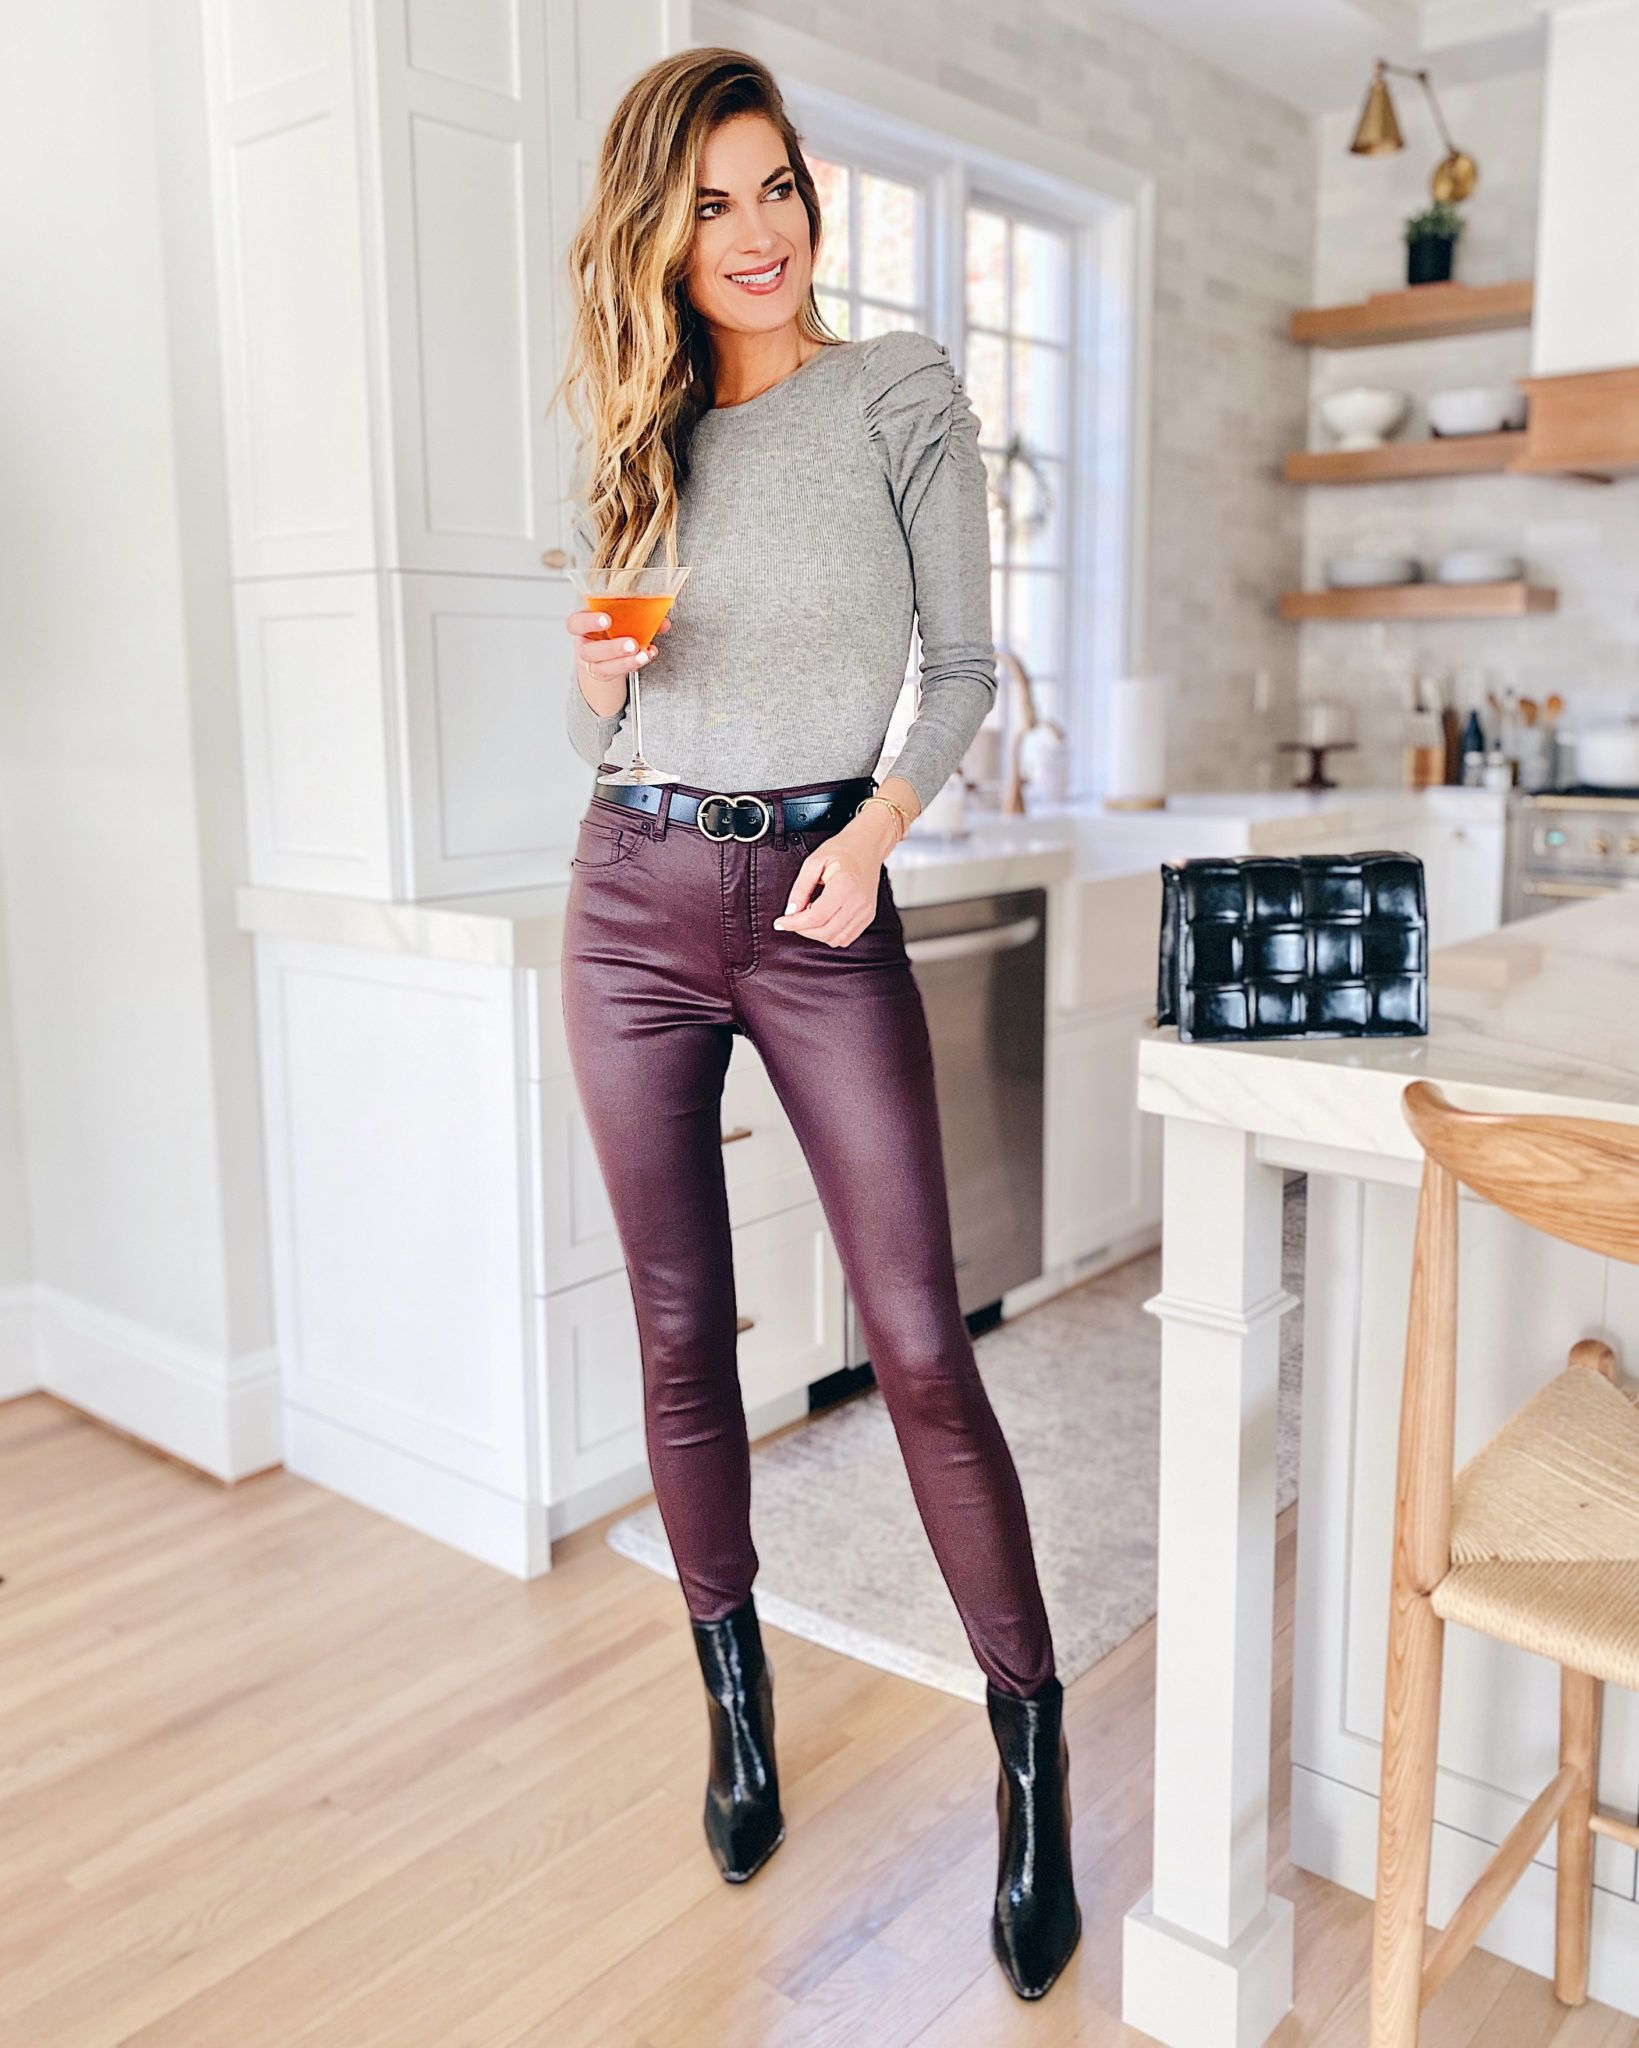 Holiday Outfit Ideas 2020 With Express Pinteresting Plans In 2020